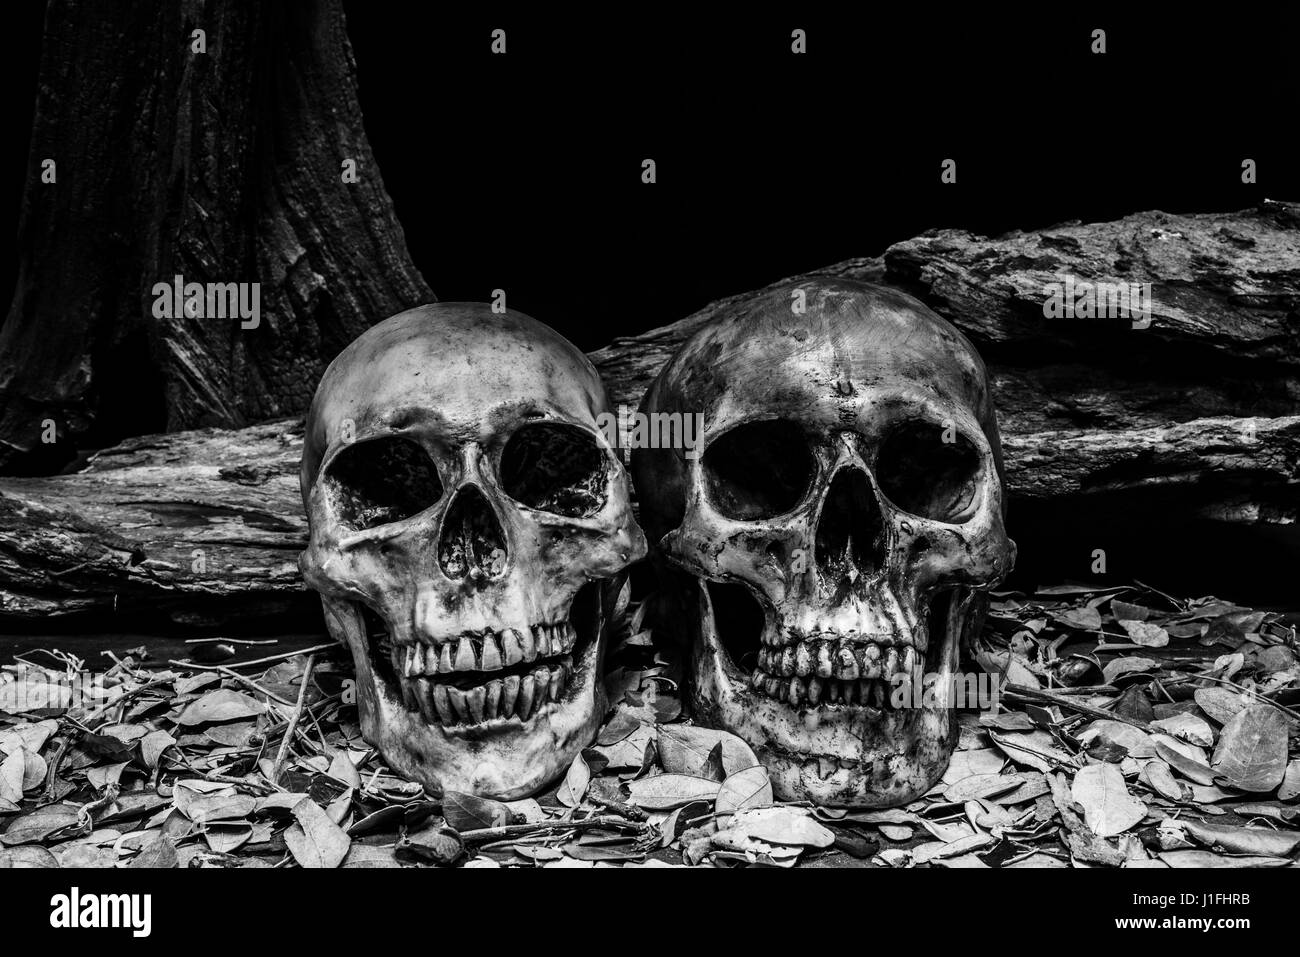 still life photography with human skull and timber background, darkness horror halloween concept - Stock Image